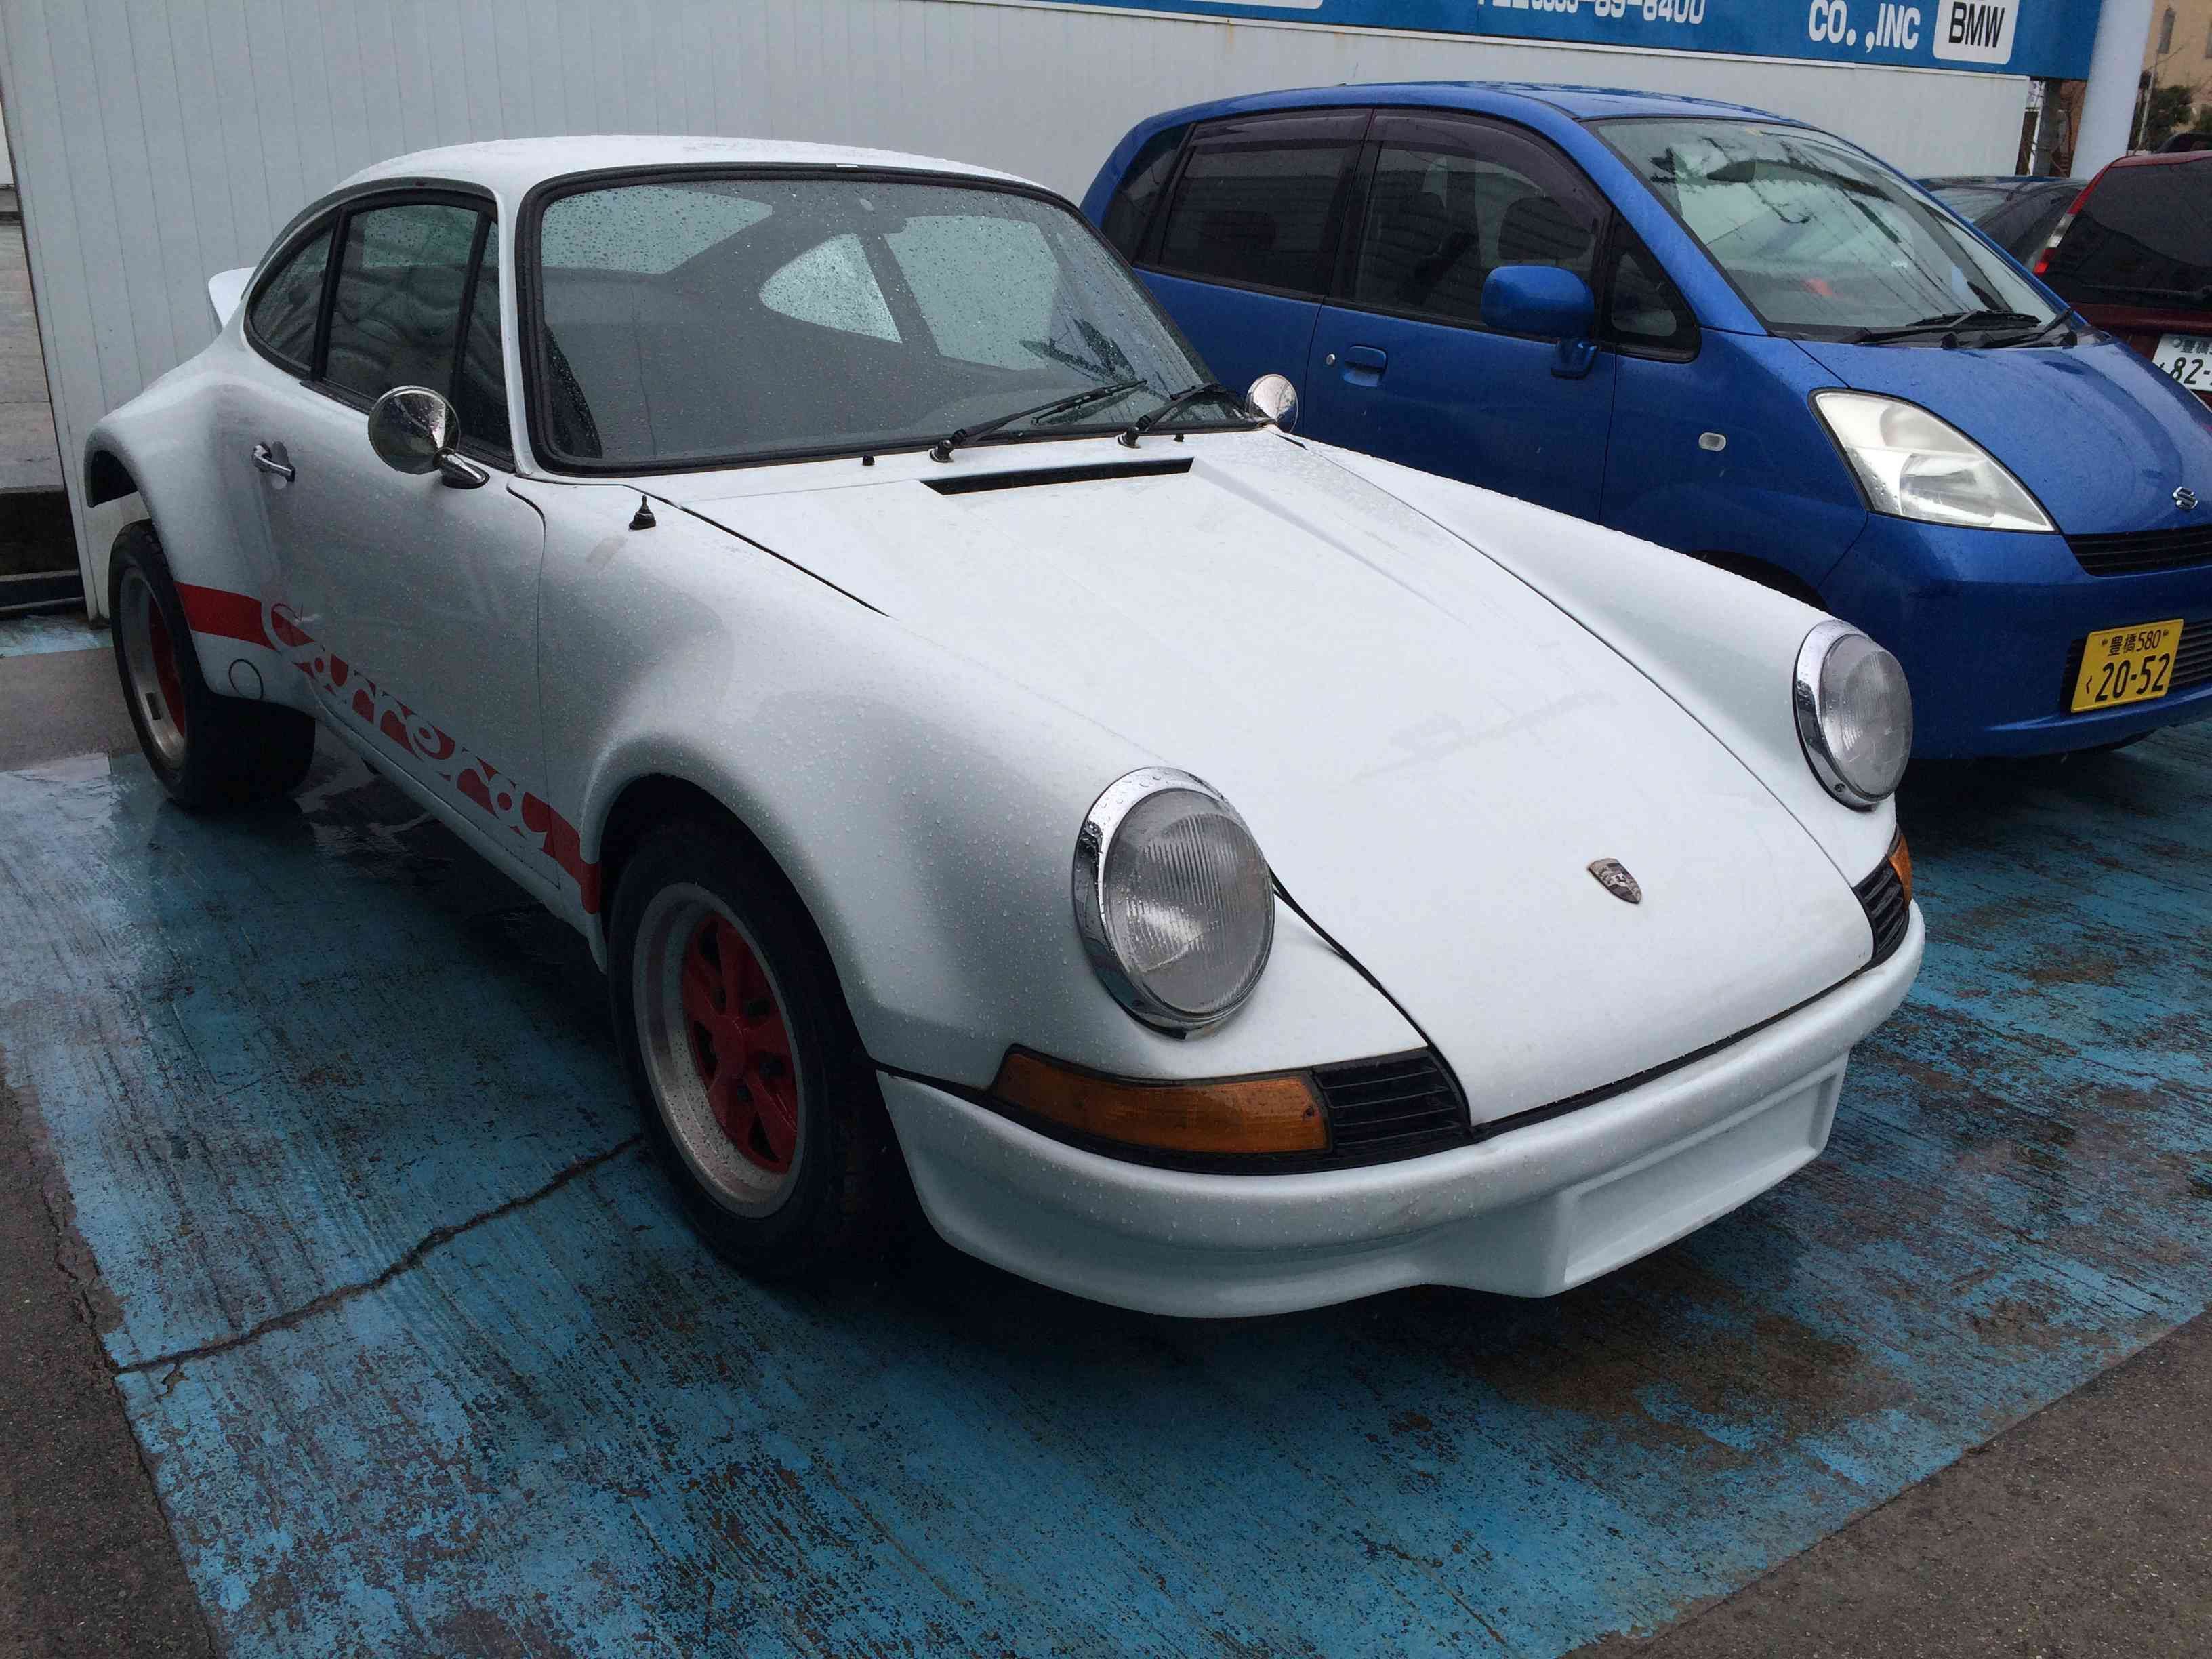 1973 Porsche 911T - Coupe - € 69.911 - US $ 69.911 -